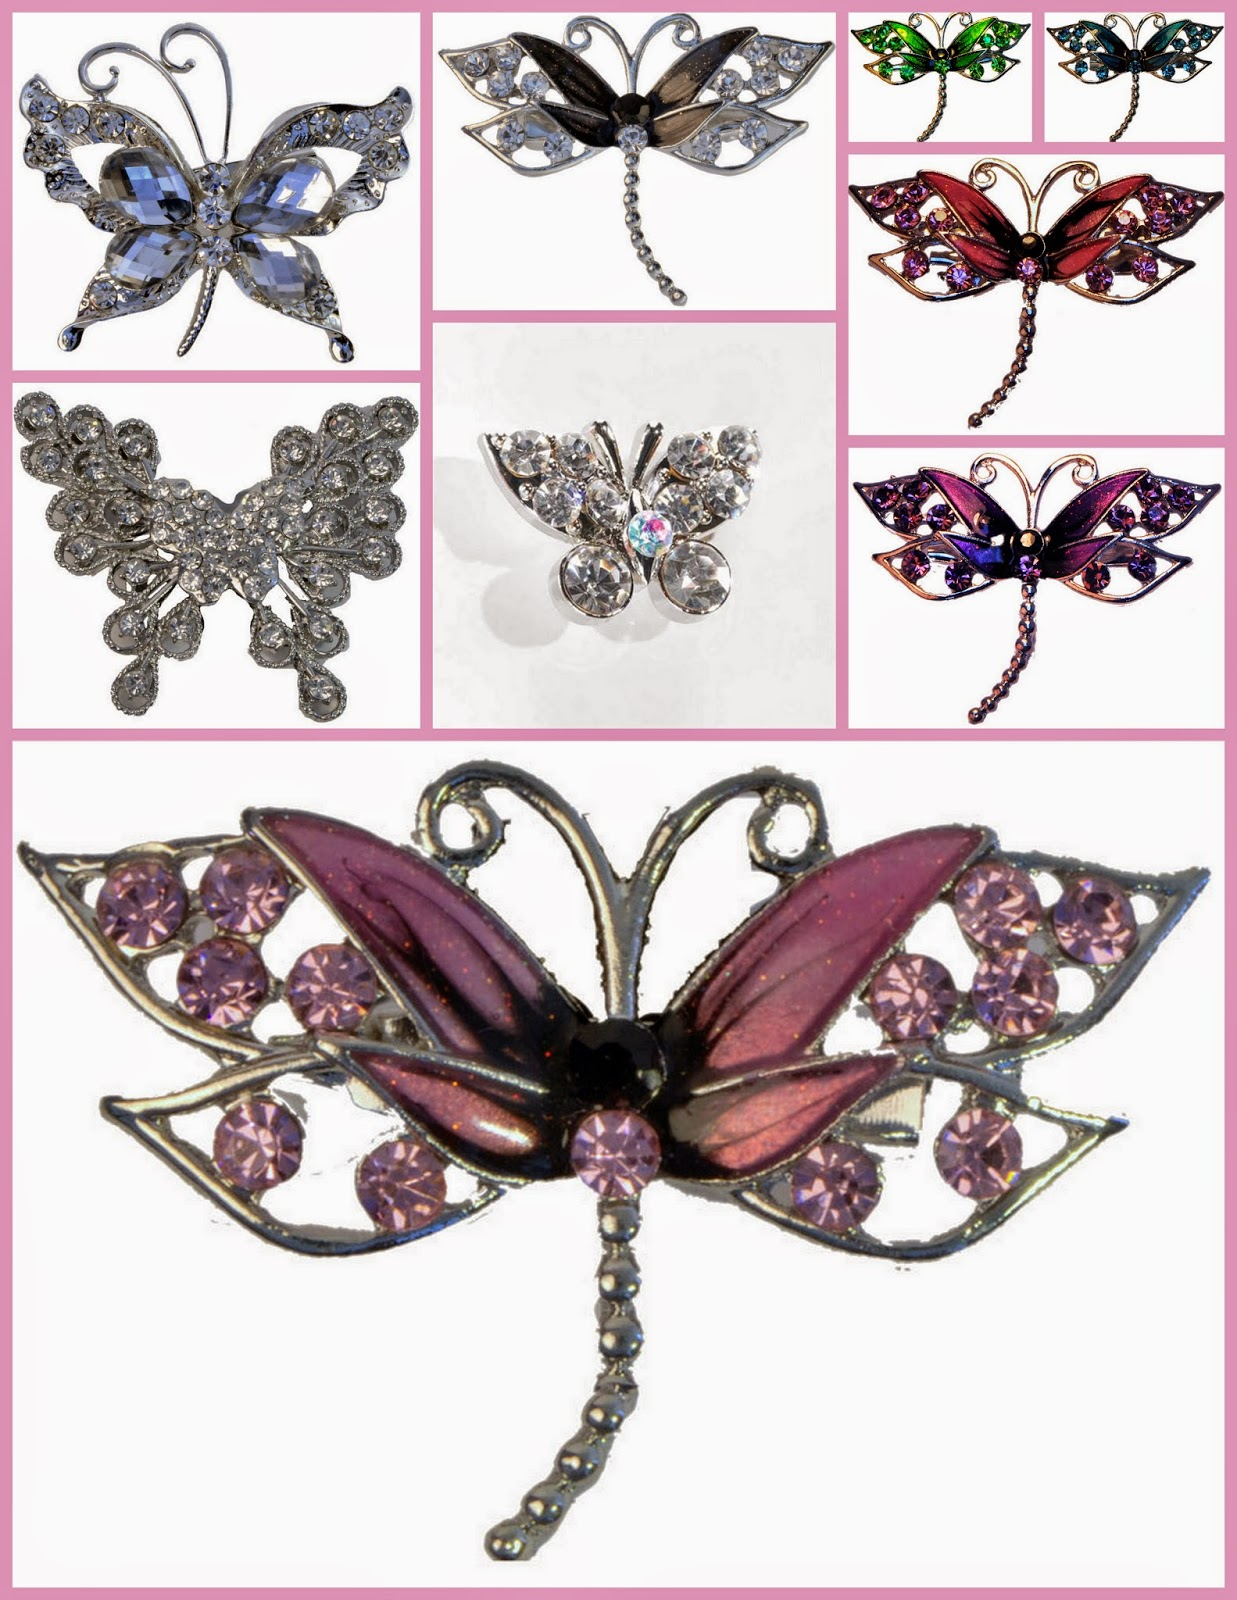 On Trend prom 2015- Collection of Bouquet Jewels for Prom corsages & nosegays